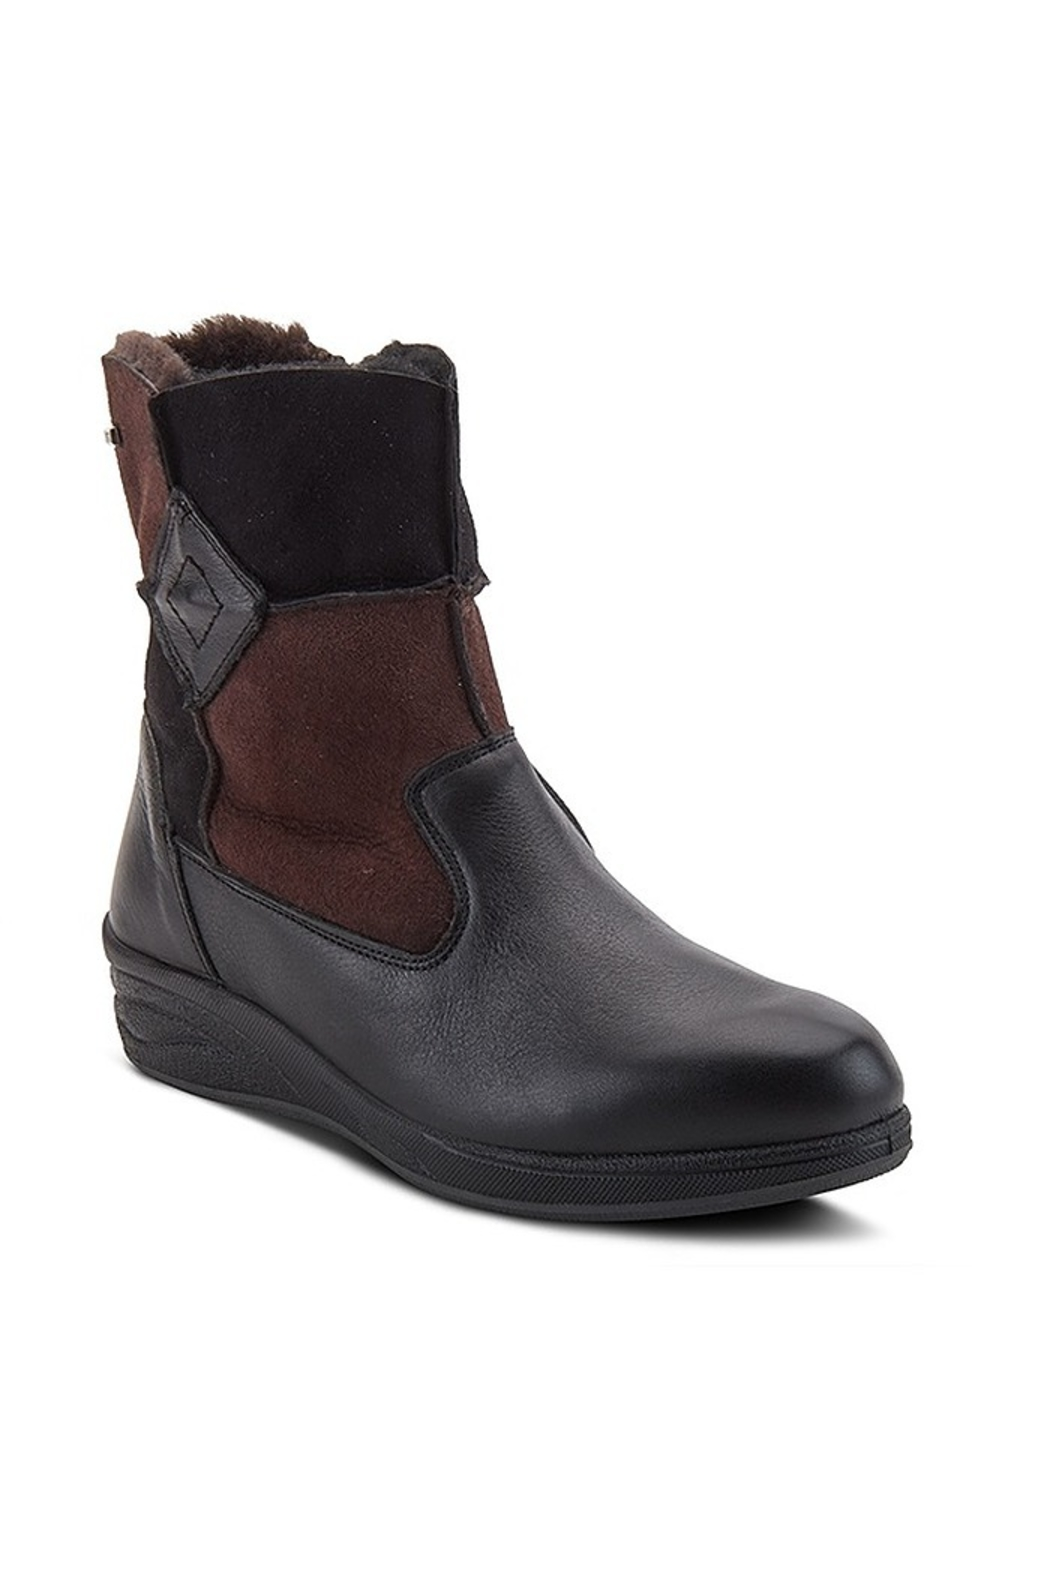 Spring Footwear Comfy Sheepskin Booties - Front Cropped Image